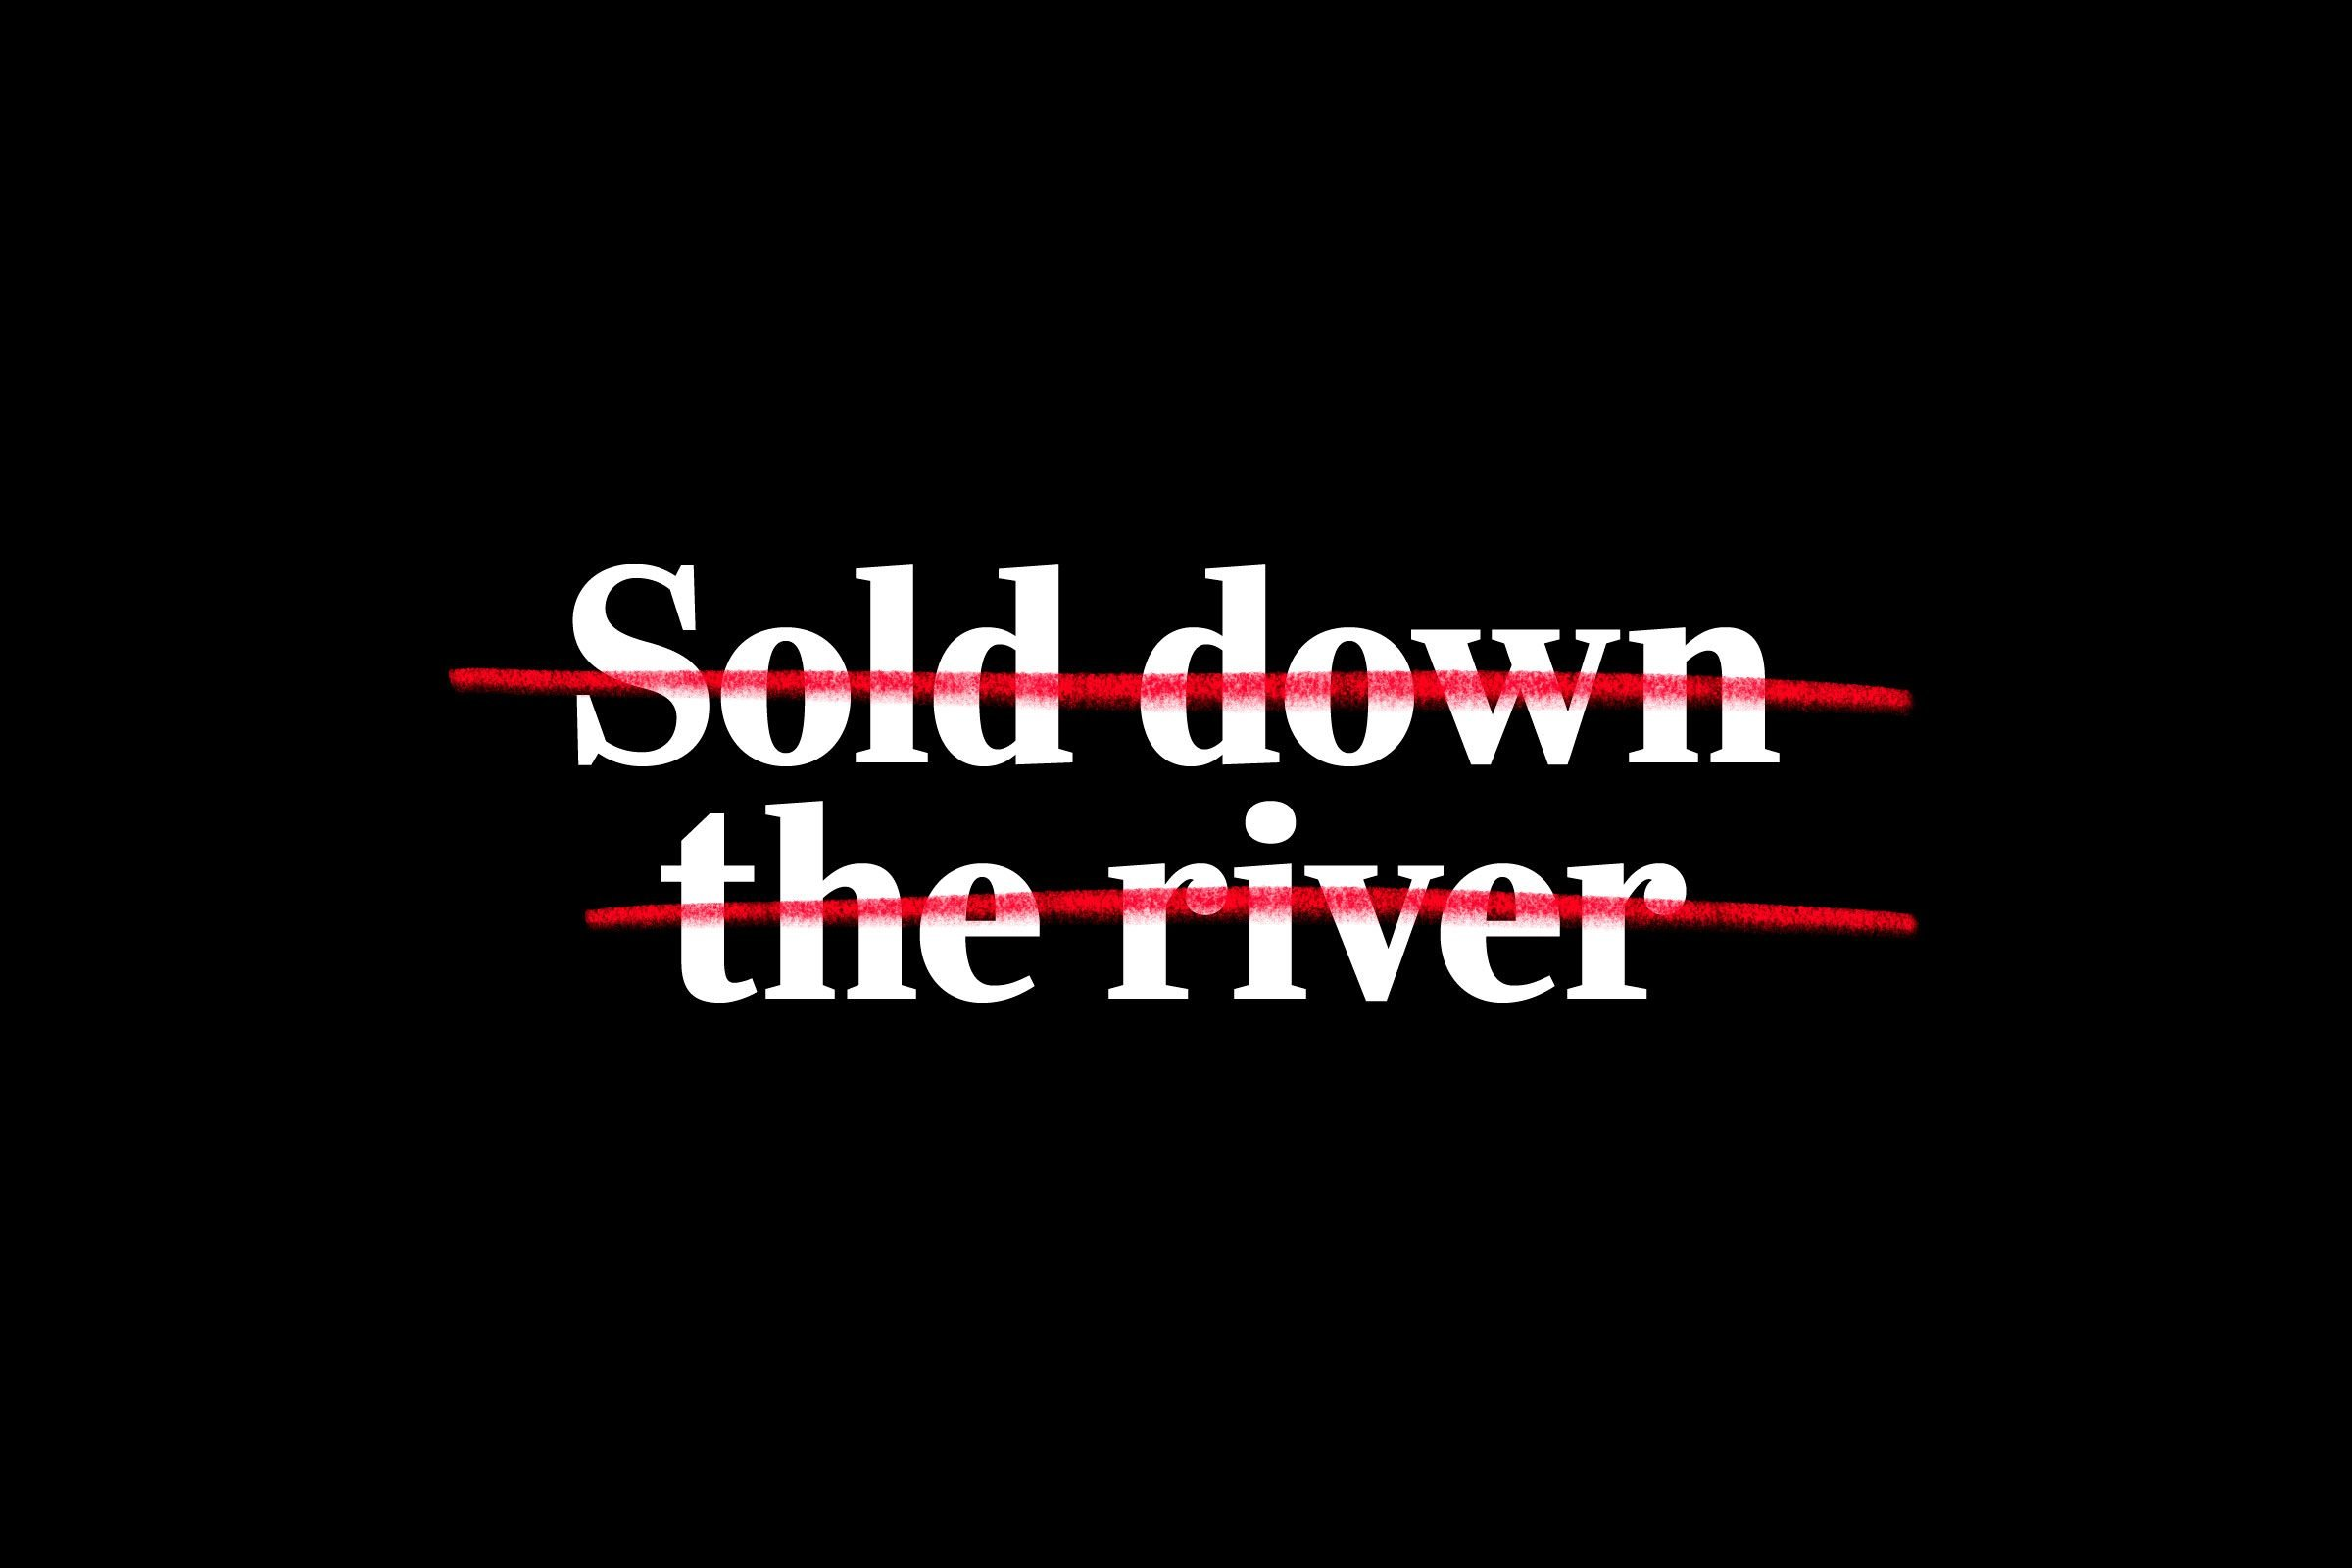 """sold down the river"" crossed out"